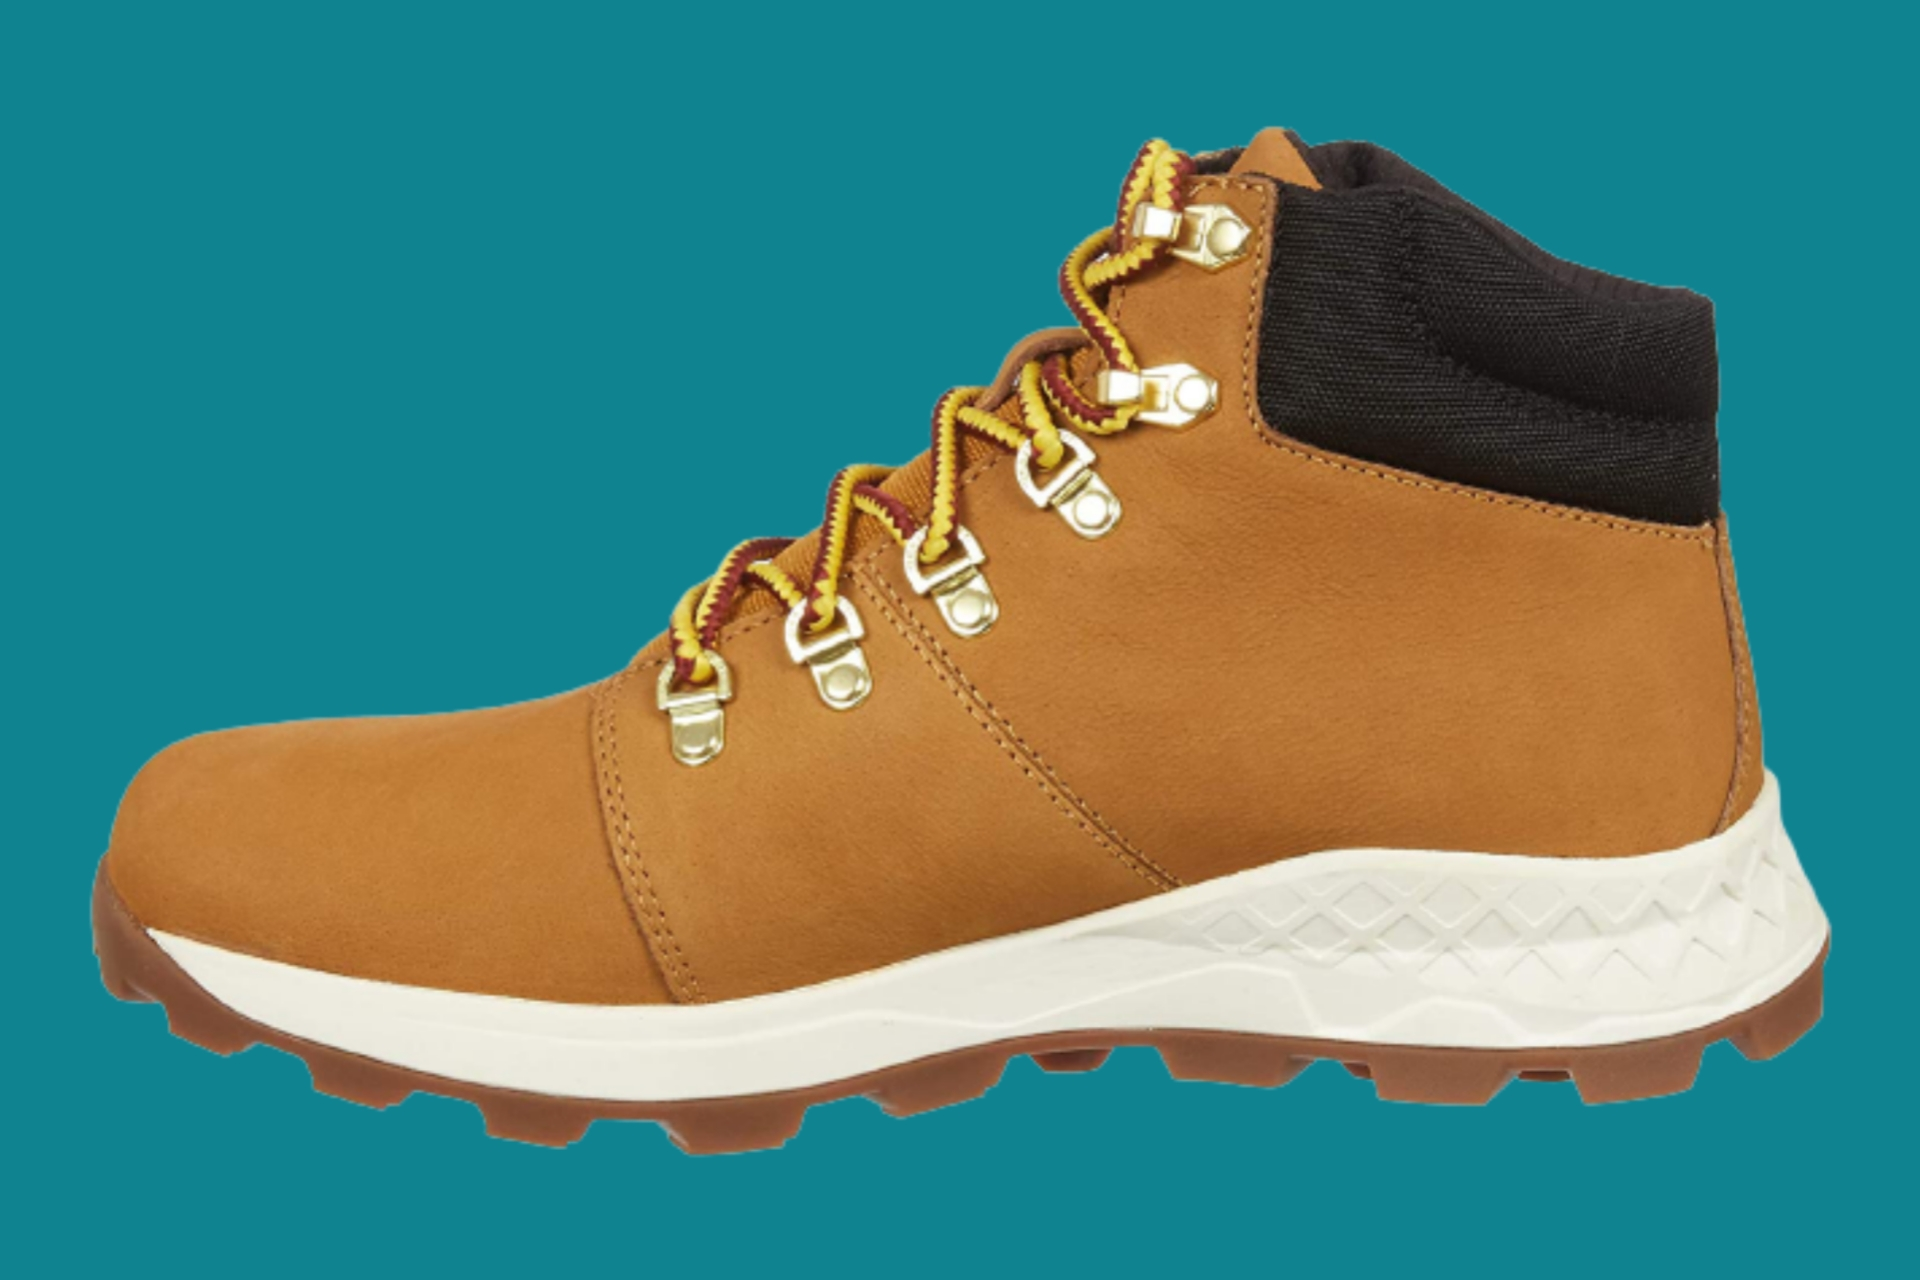 Waterproof hiking boots for hikers